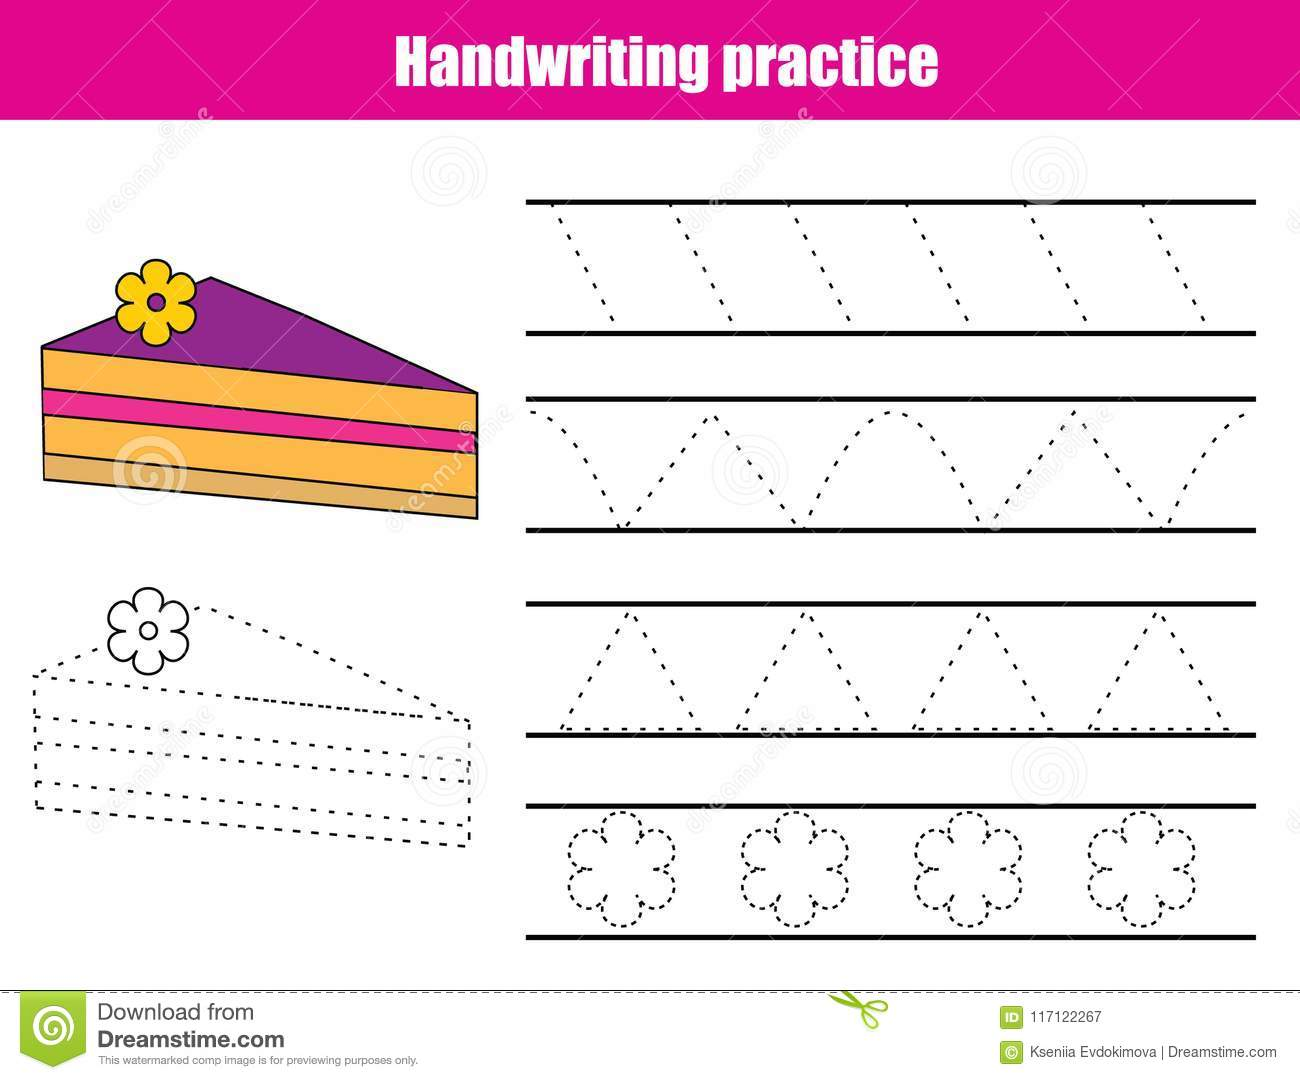 Handwriting Practice Sheet Educational Children Game Printable Worksheet For Kids Tracing